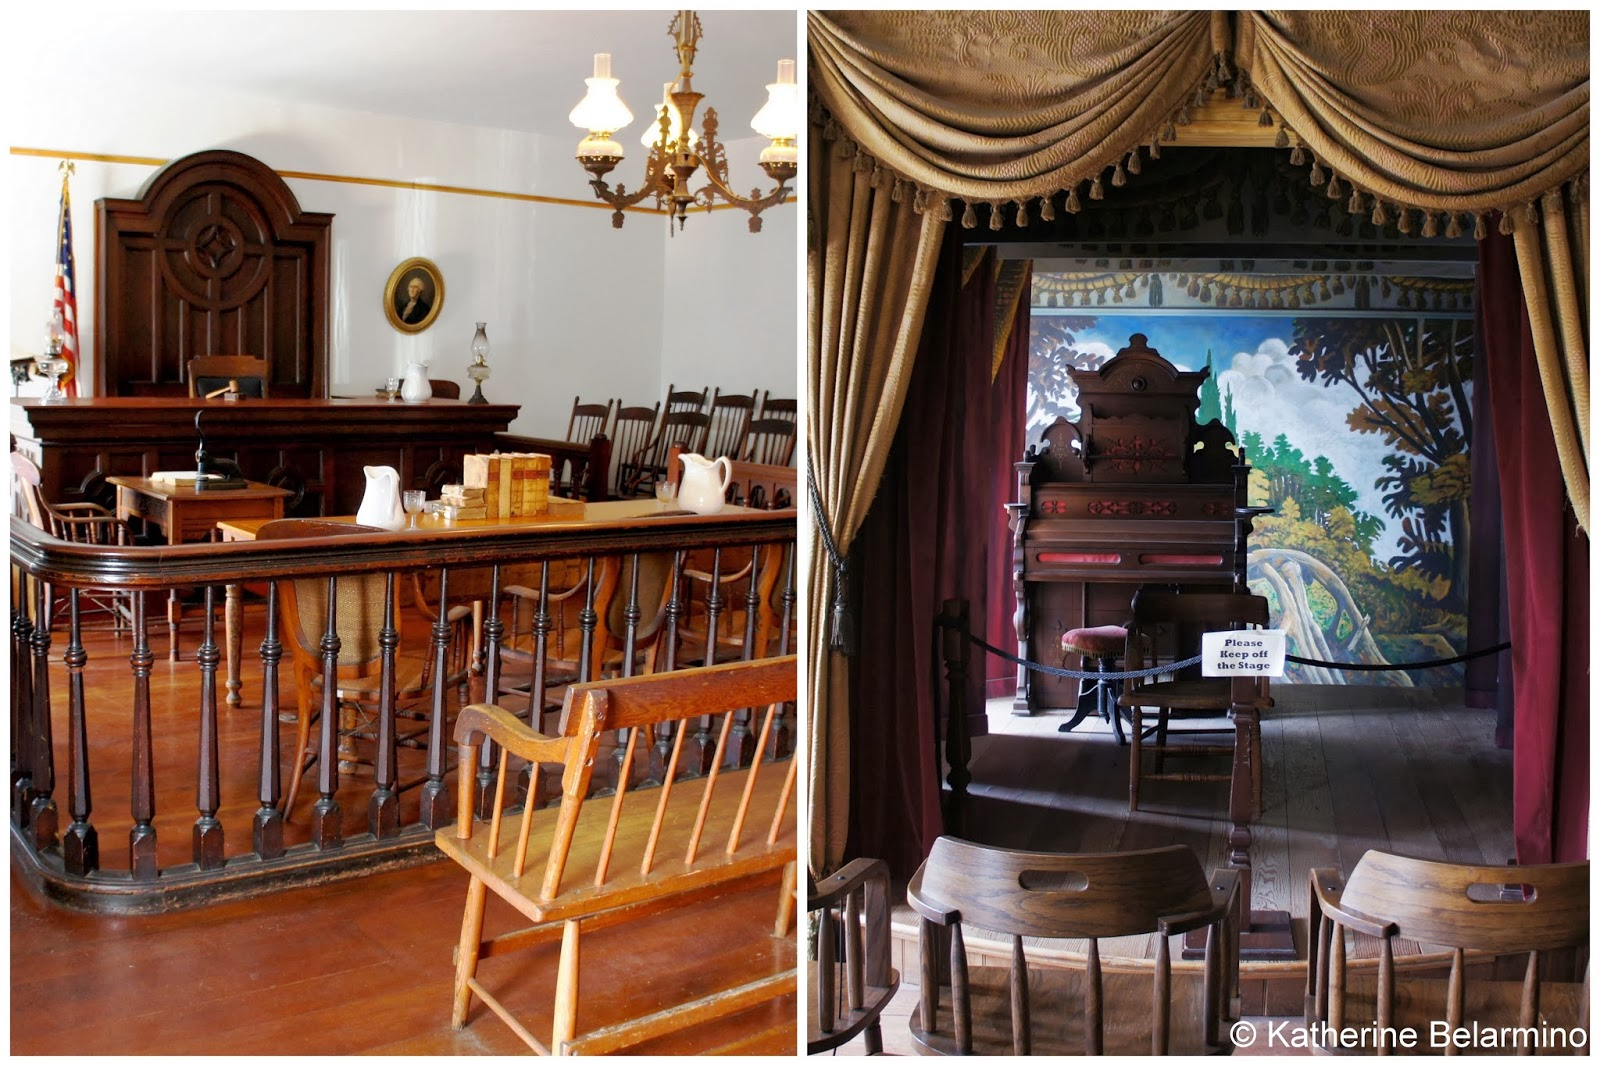 Courtroom and Theater of Whaley House San Diego California